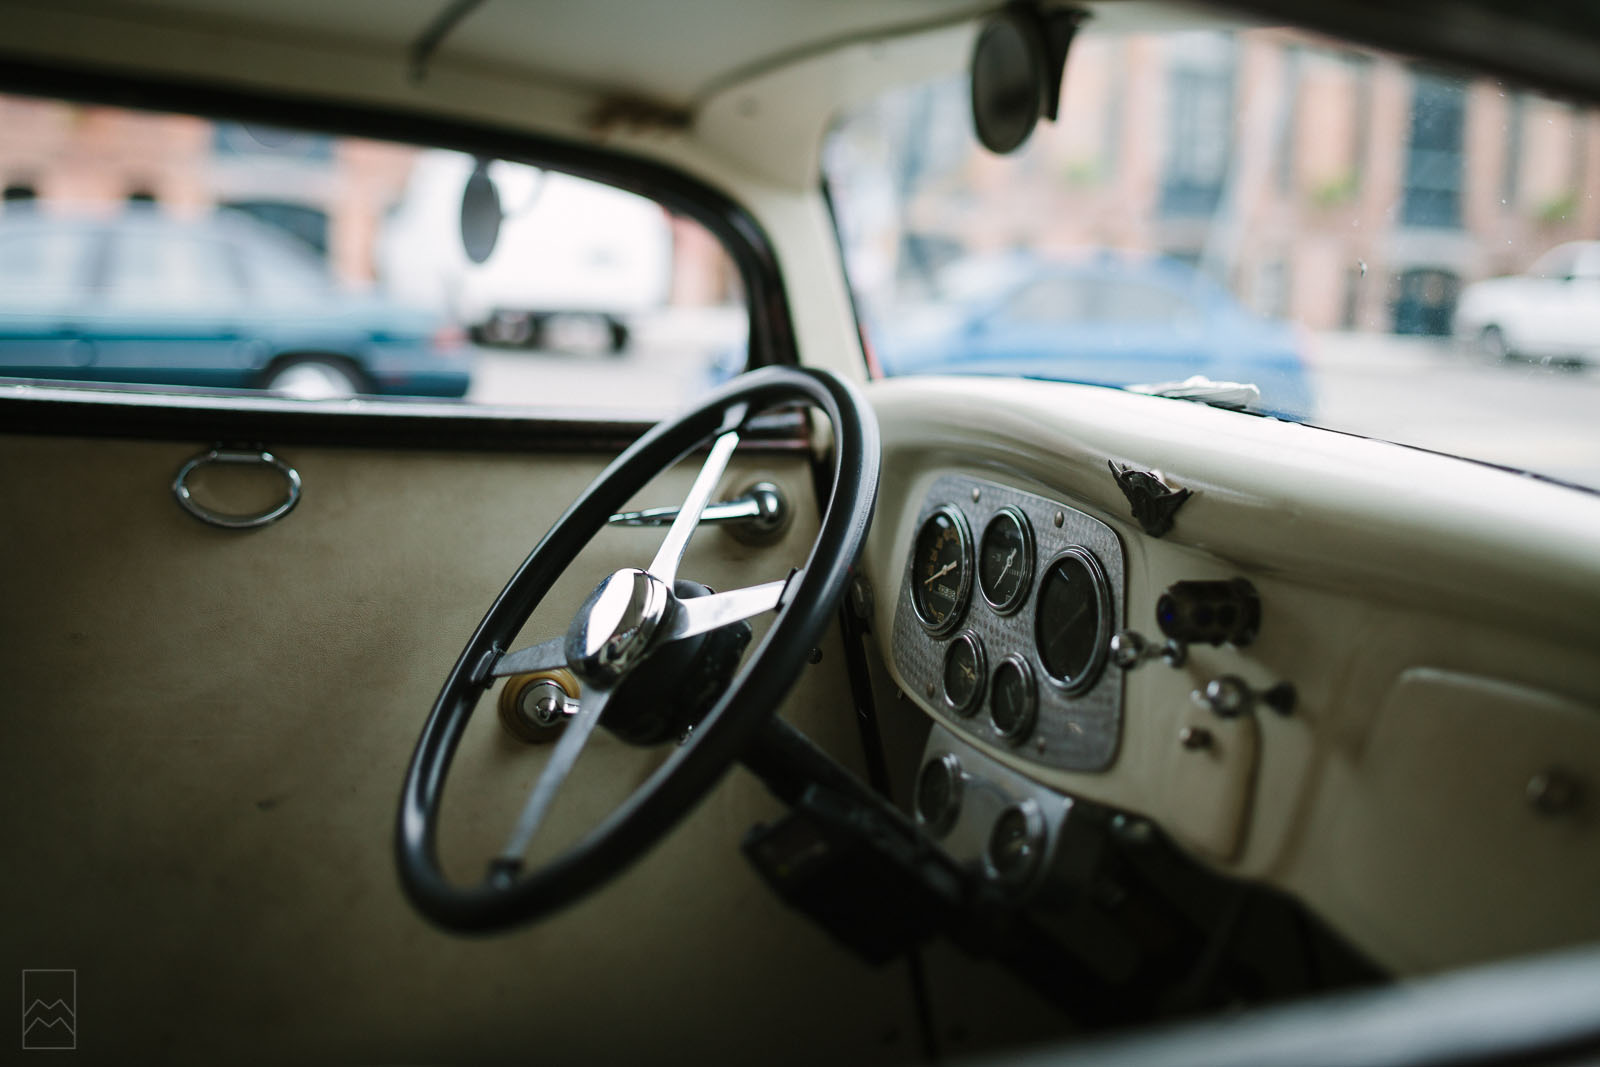 tilt-shift pic of vintage car steering wheel by Meghan McMackin